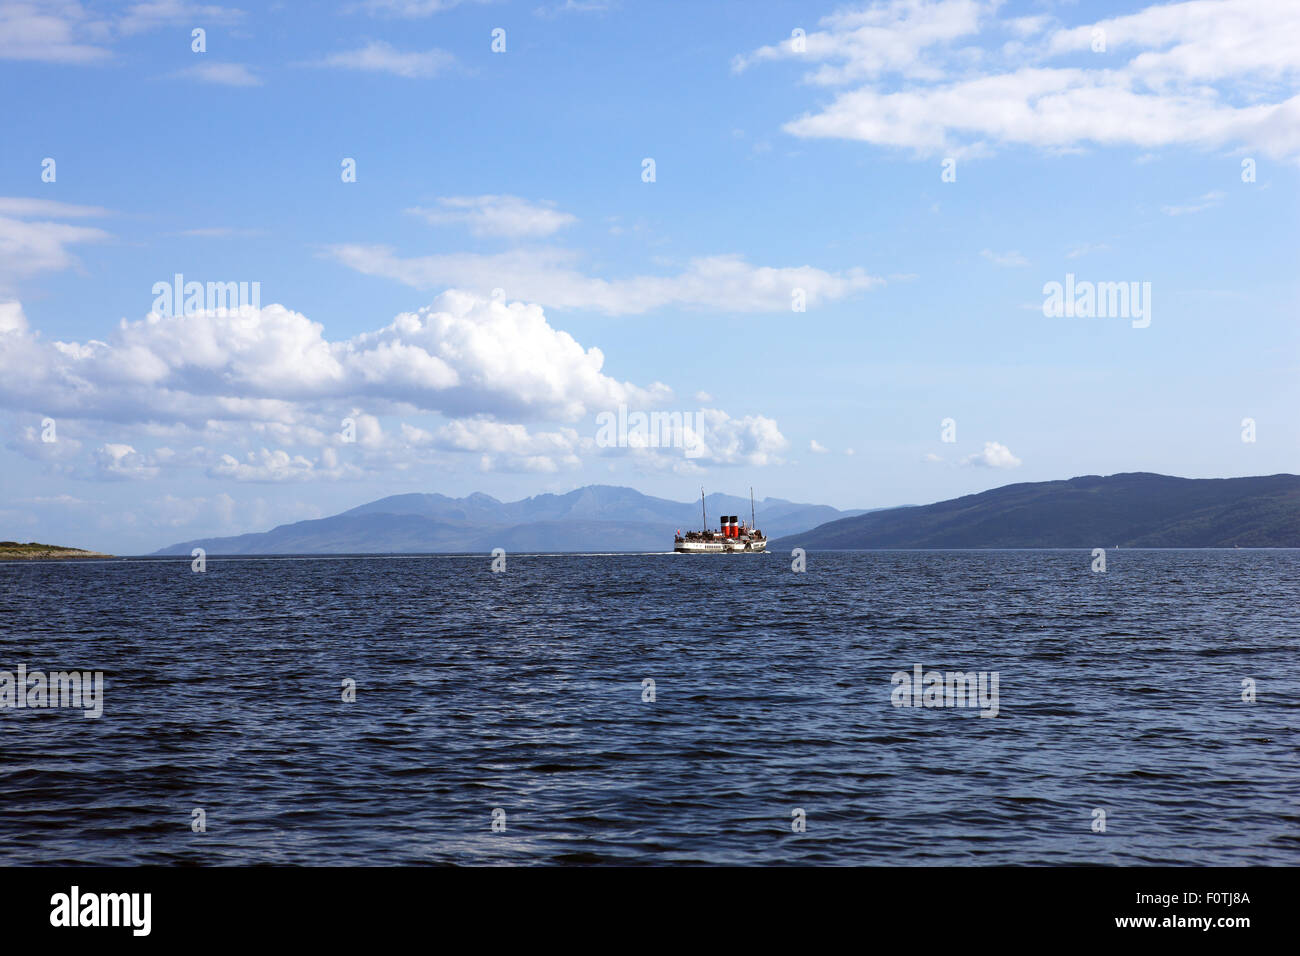 Waverley paddle steamer crossing Loch Fyne towards Tarbert with the hills of Arran in the background - Stock Image